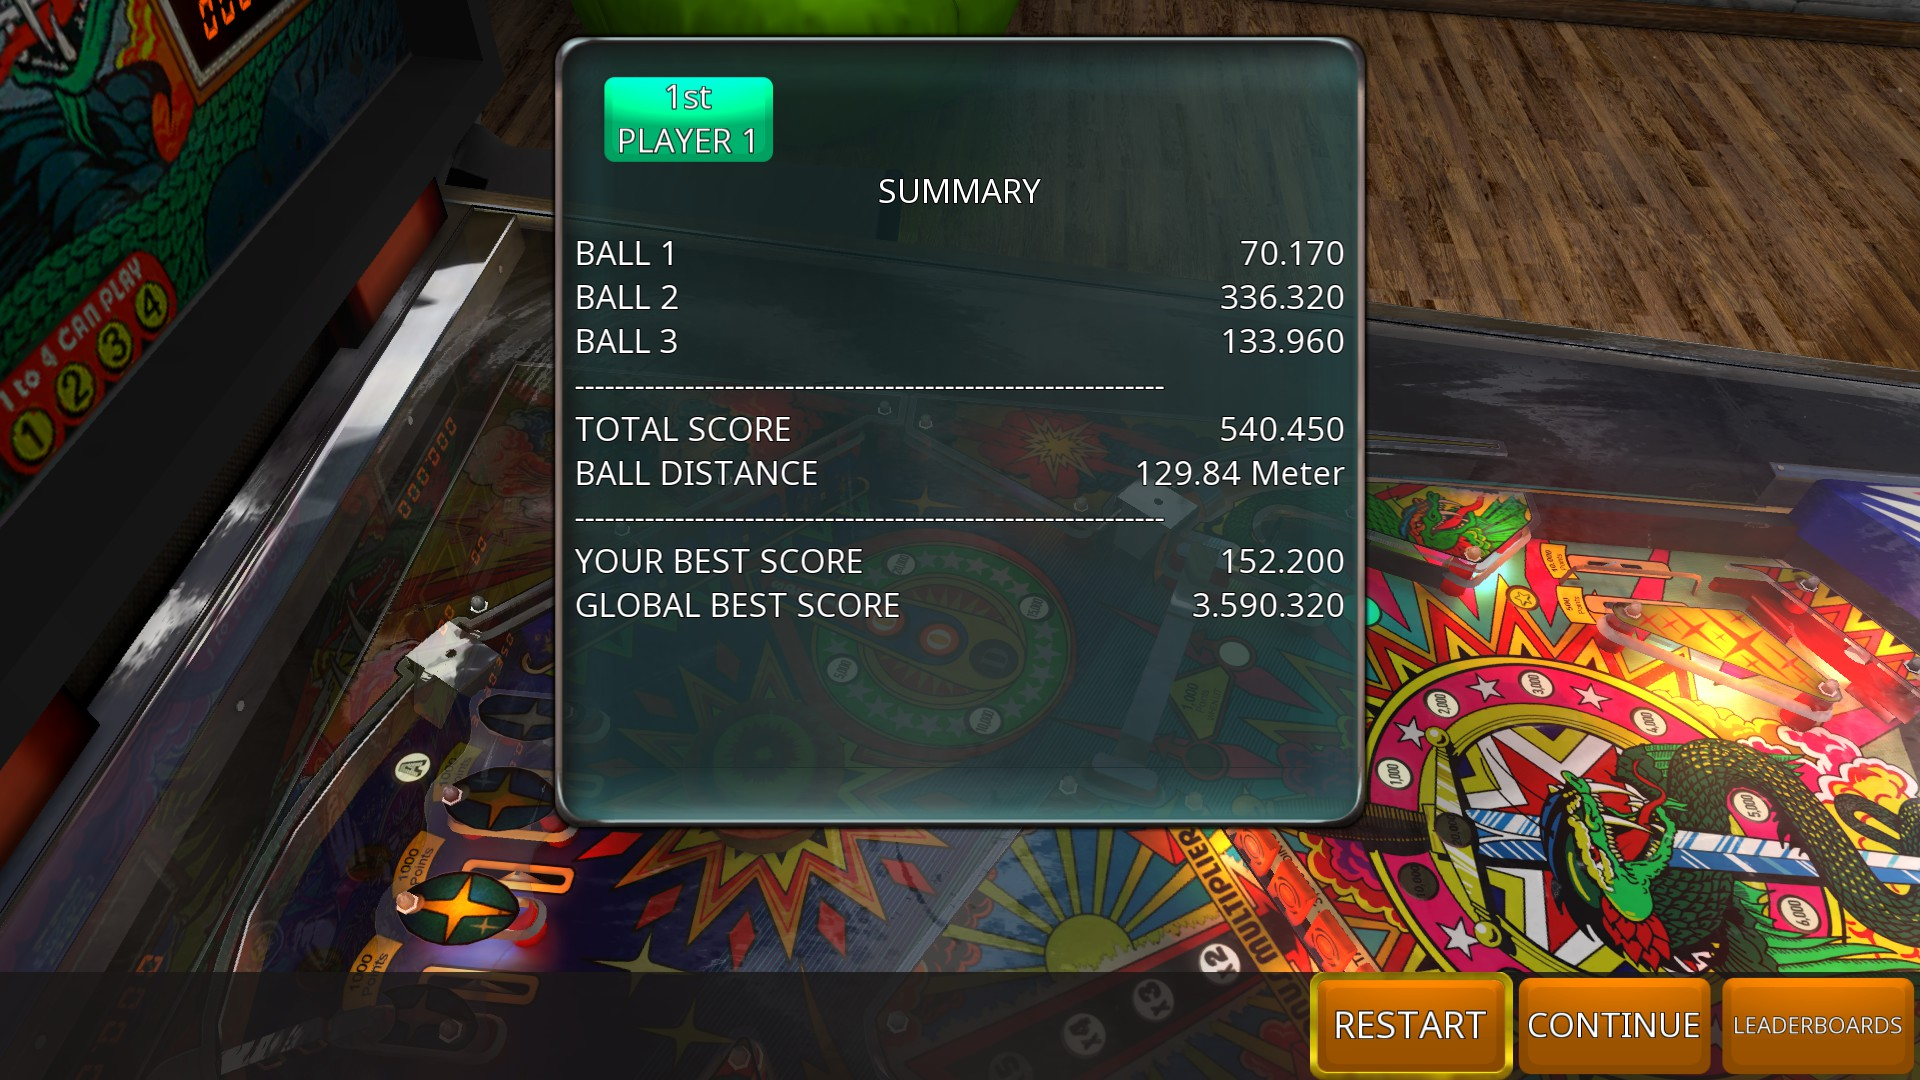 Zaccaria Pinball: Star God [3 balls] 540,450 points